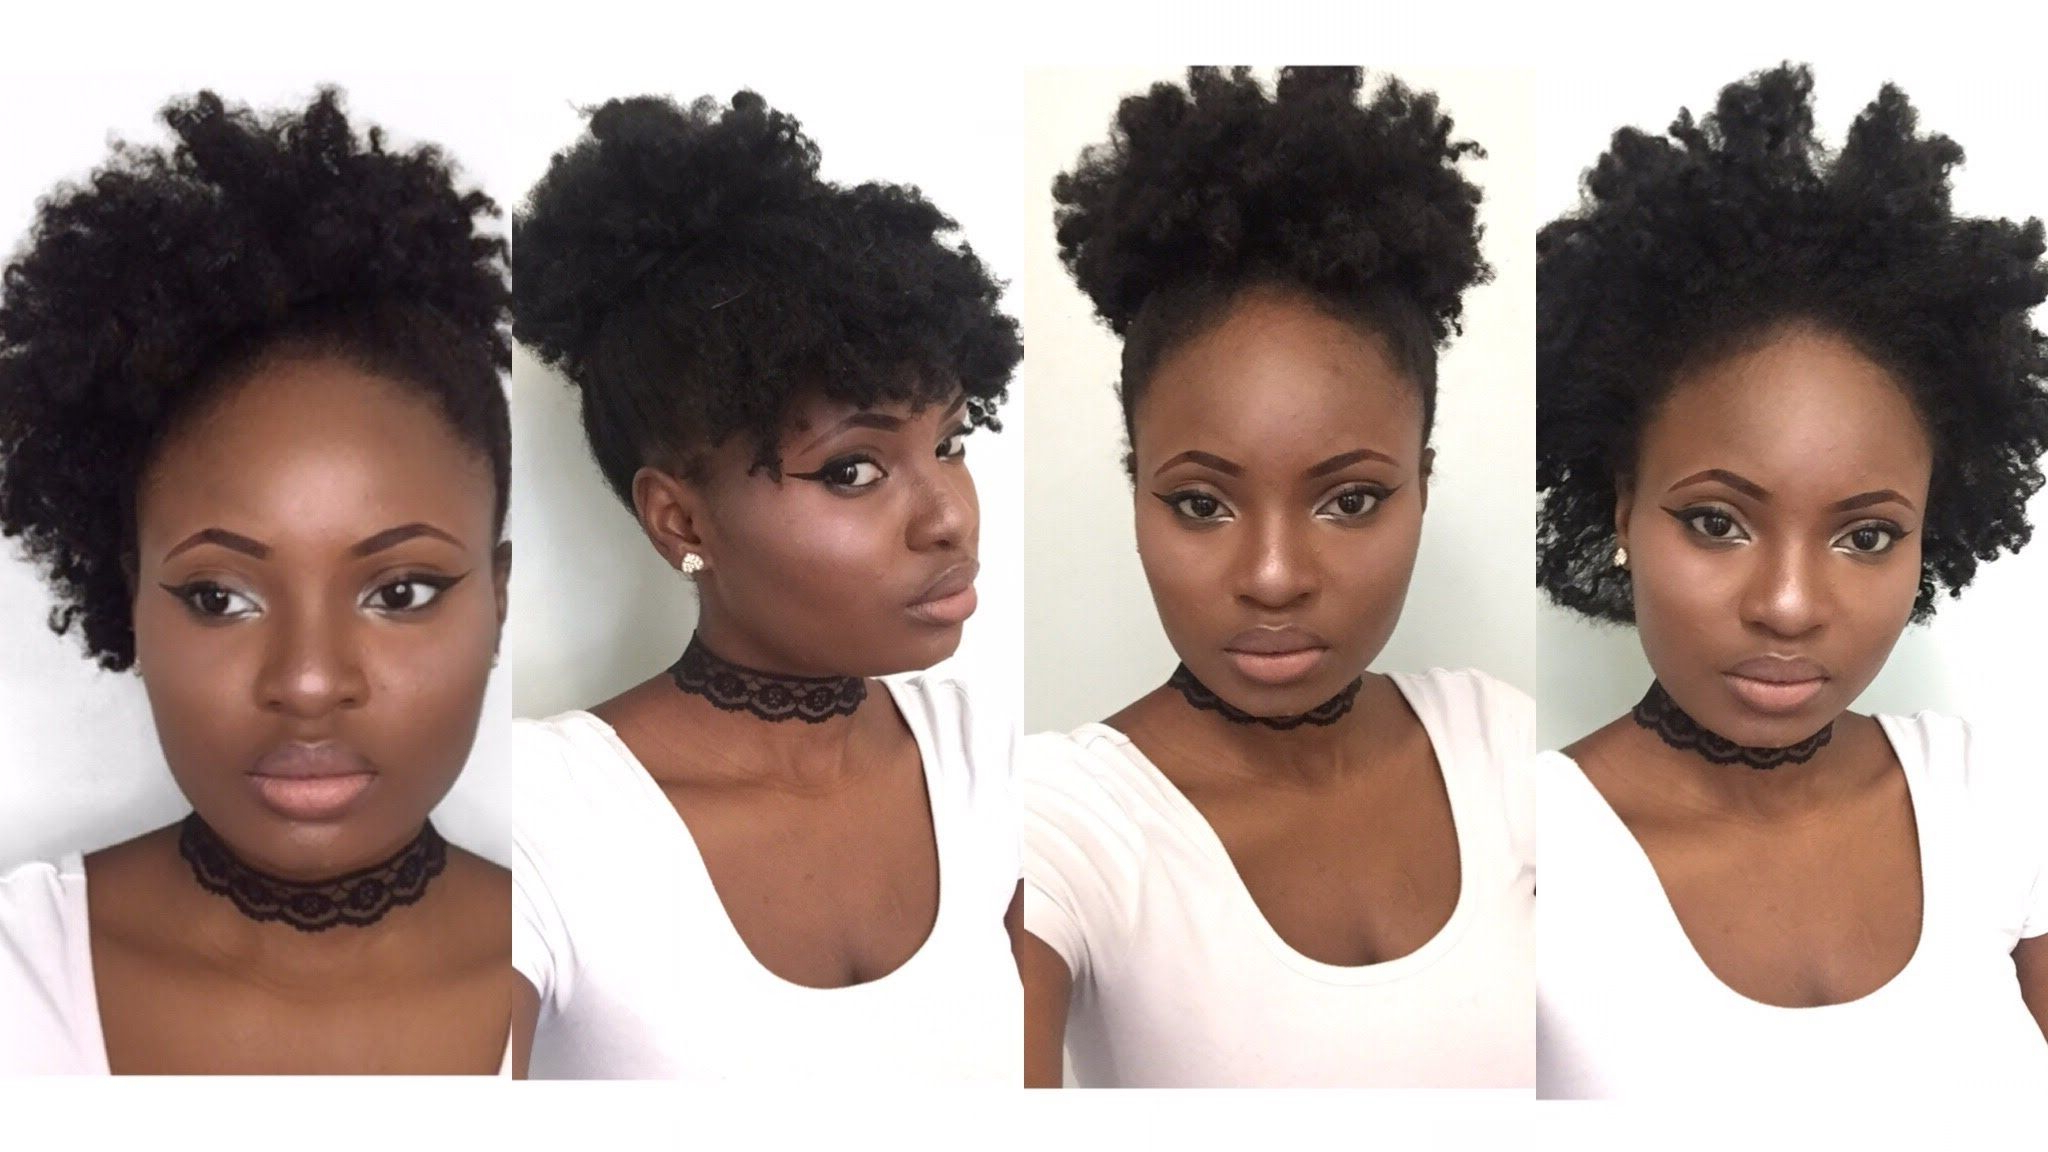 Famous Medium Hairstyles For Afro Hair In 4 Simple Back To School Hairstyles For Medium Natural Hair (4C (View 11 of 20)